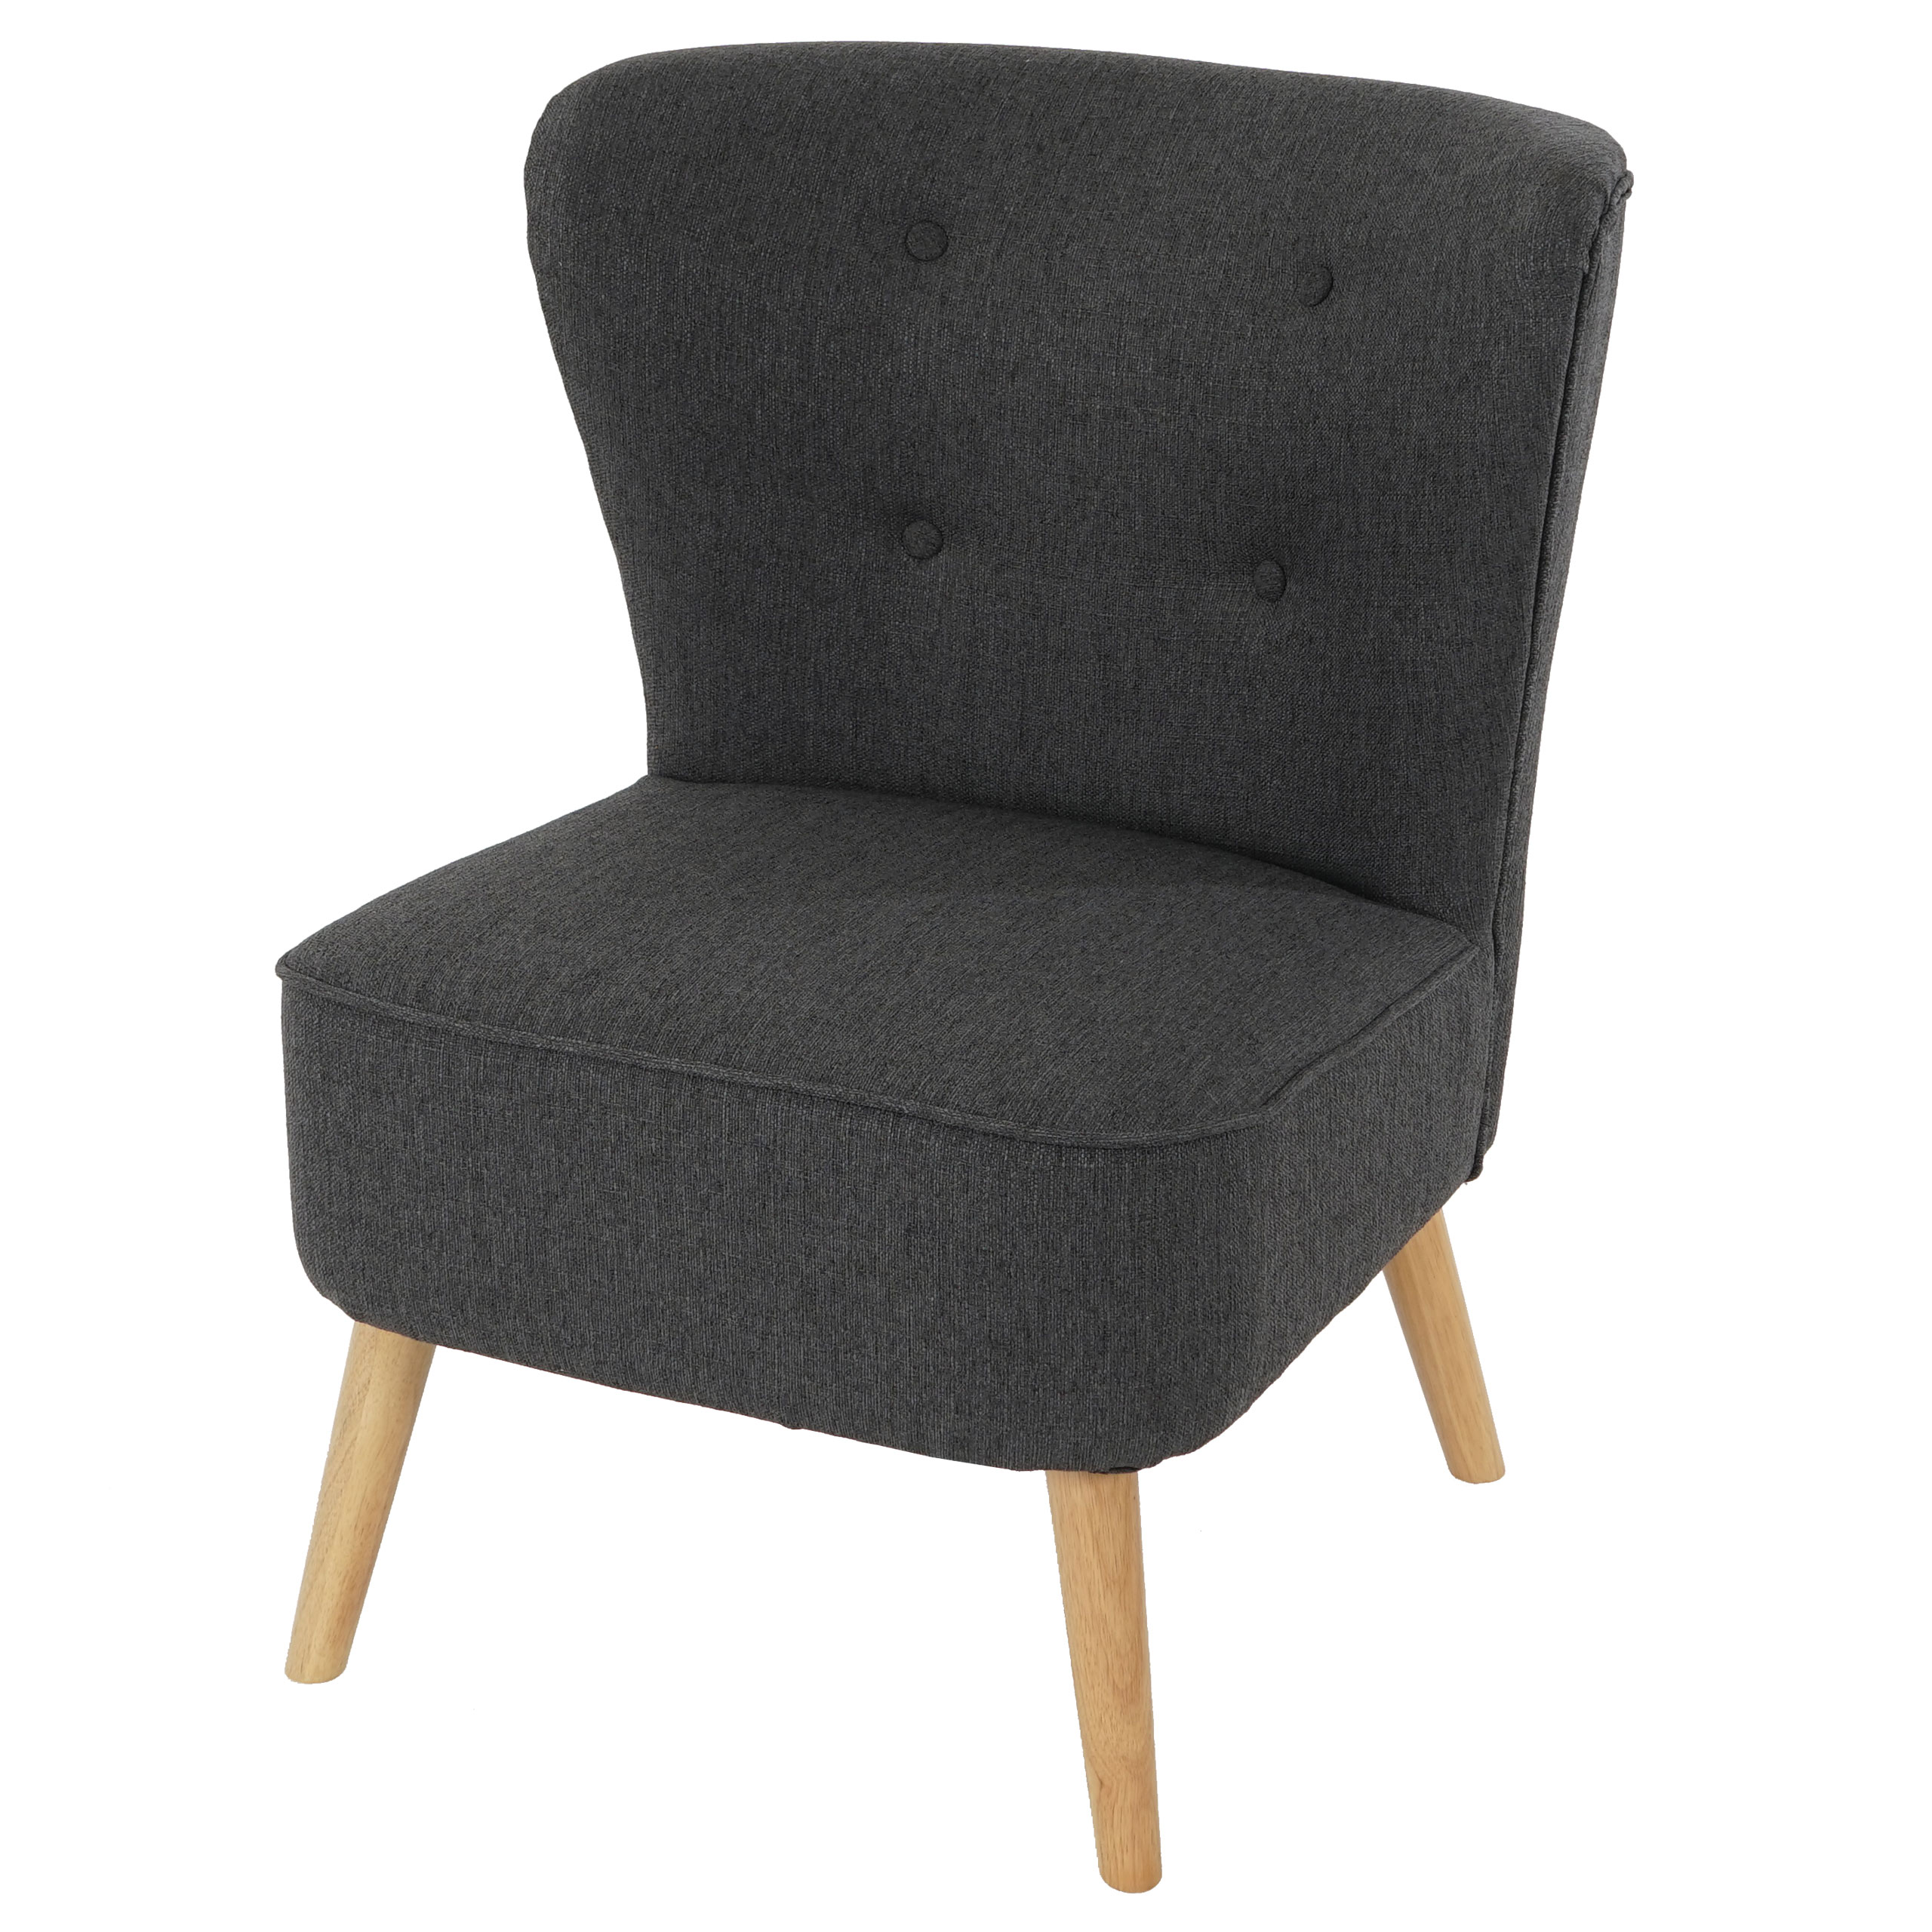 Lounge sessel retro  Malmö T313, Loungesessel Polstersessel, Retro 50er Jahre Design ...